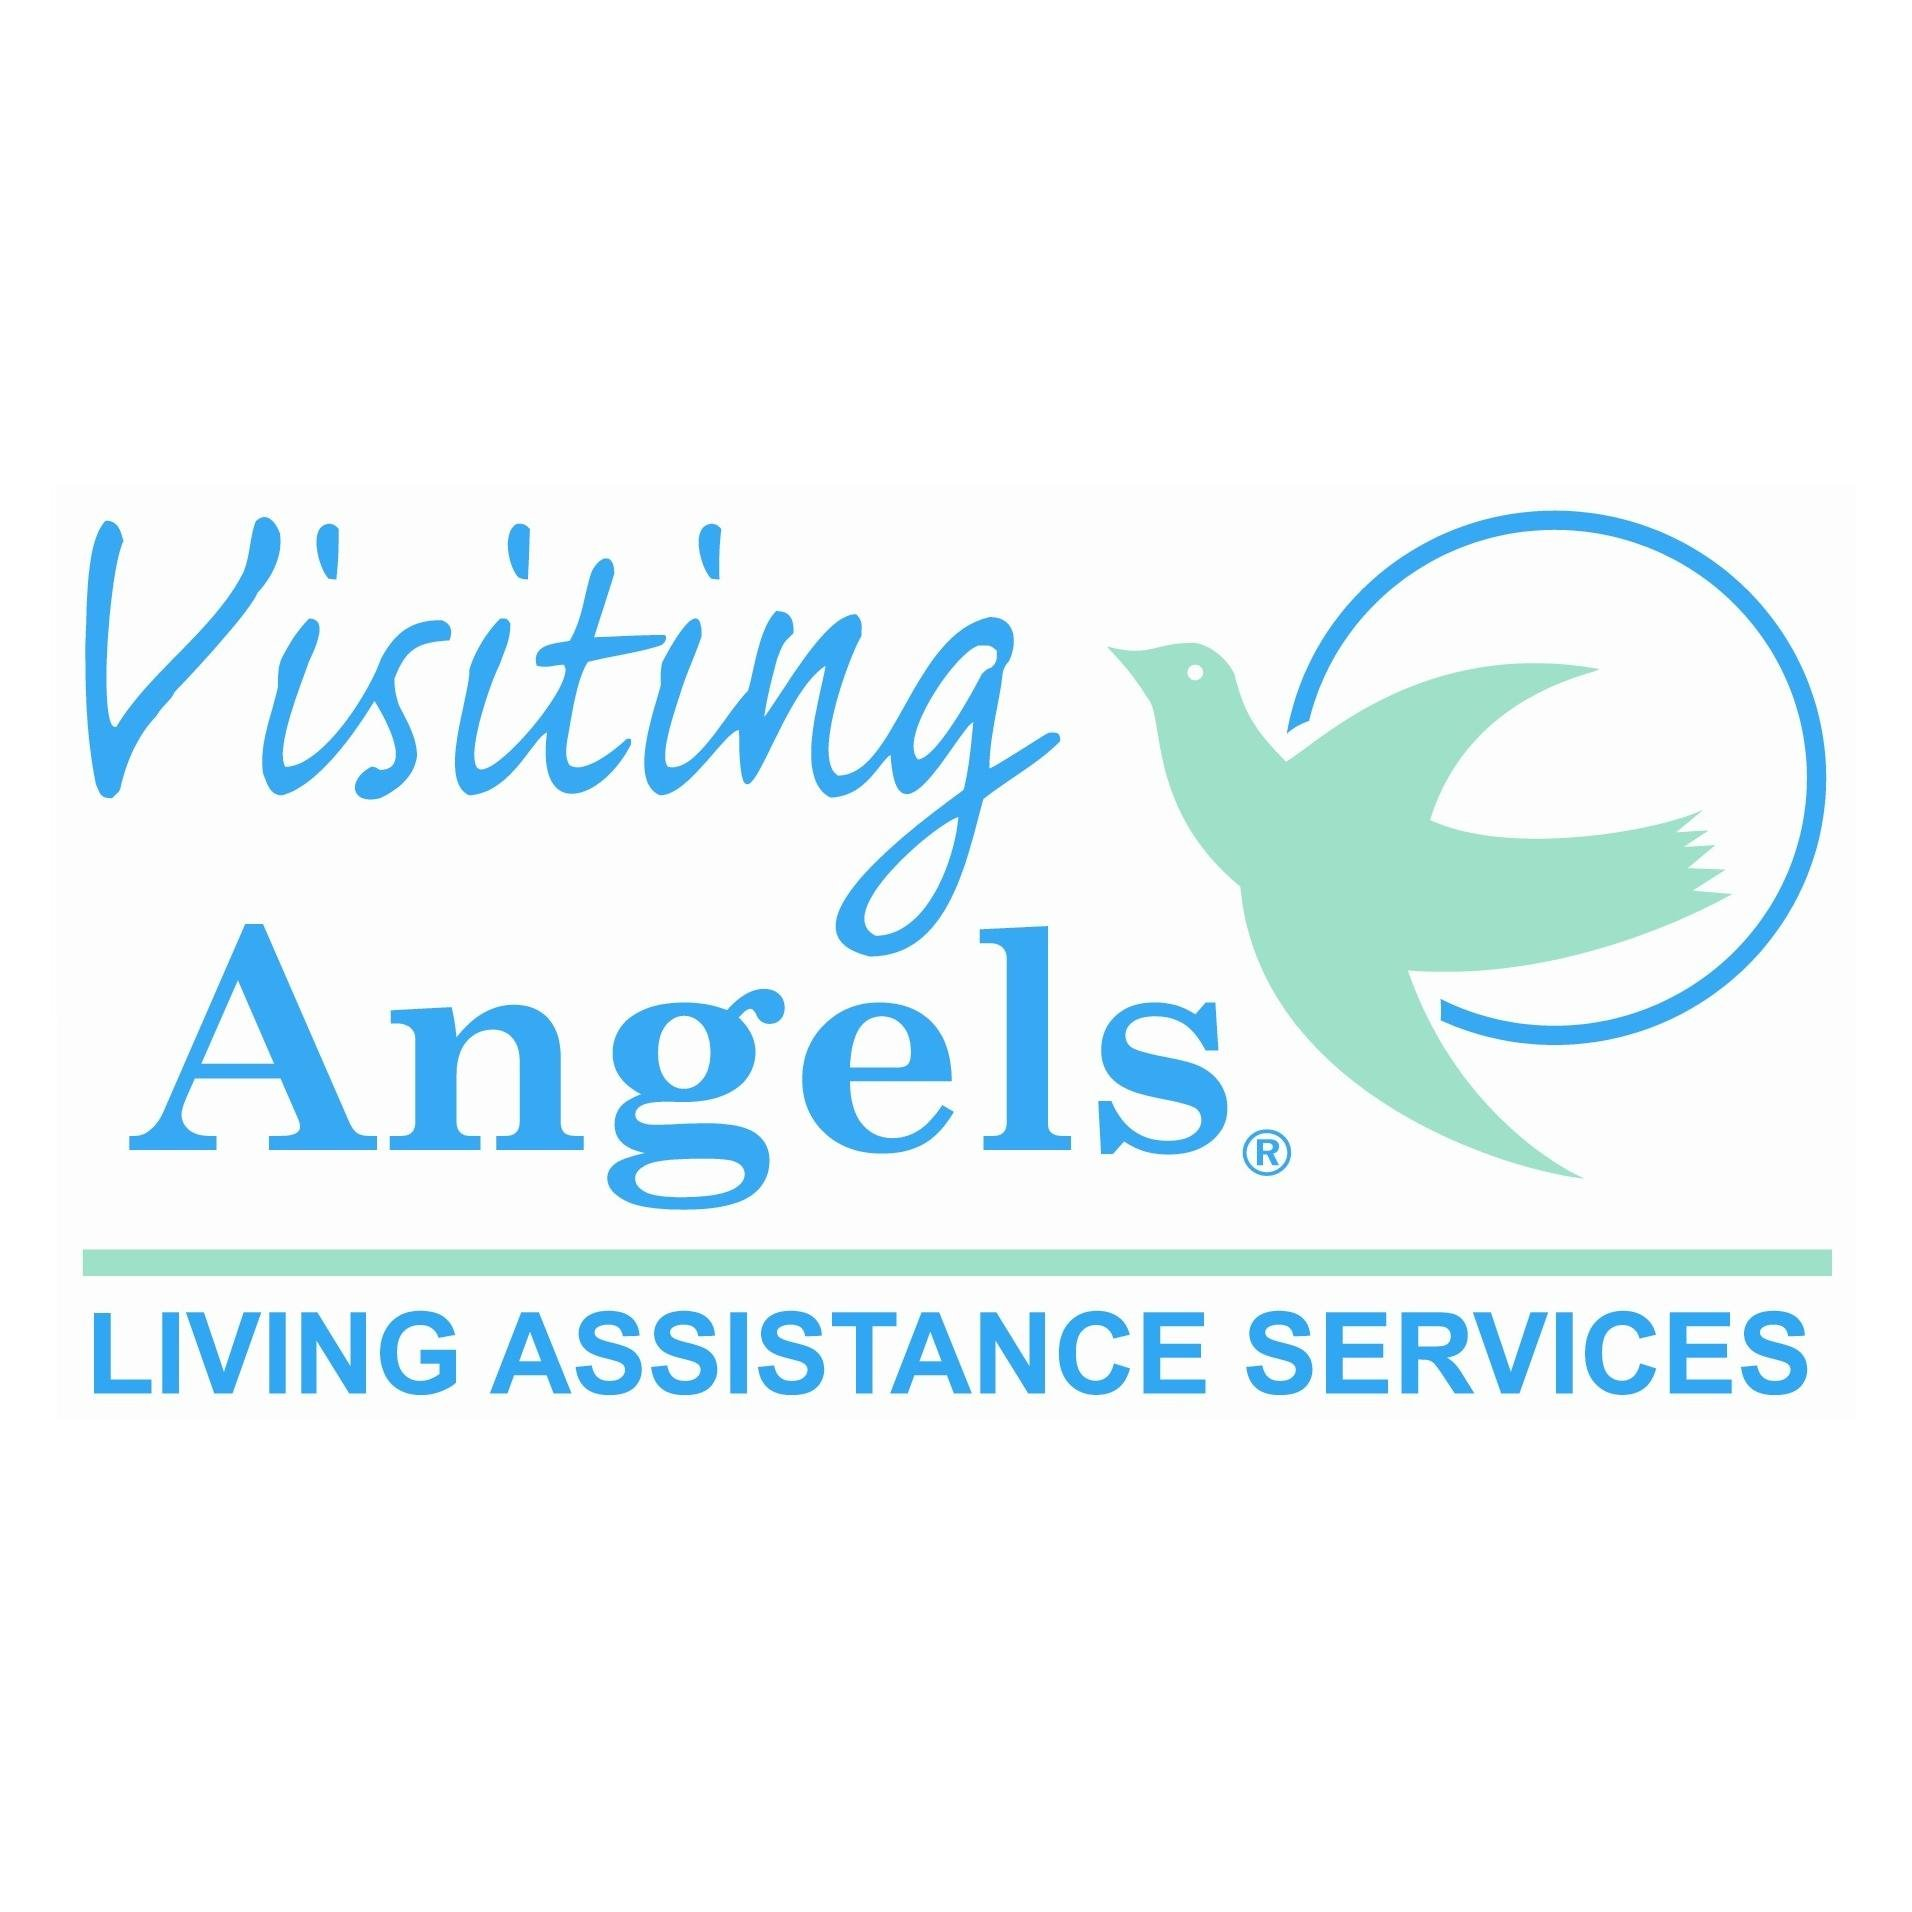 Visiting Angels Will Discuss Home Care at the Lumberton Senior Expo